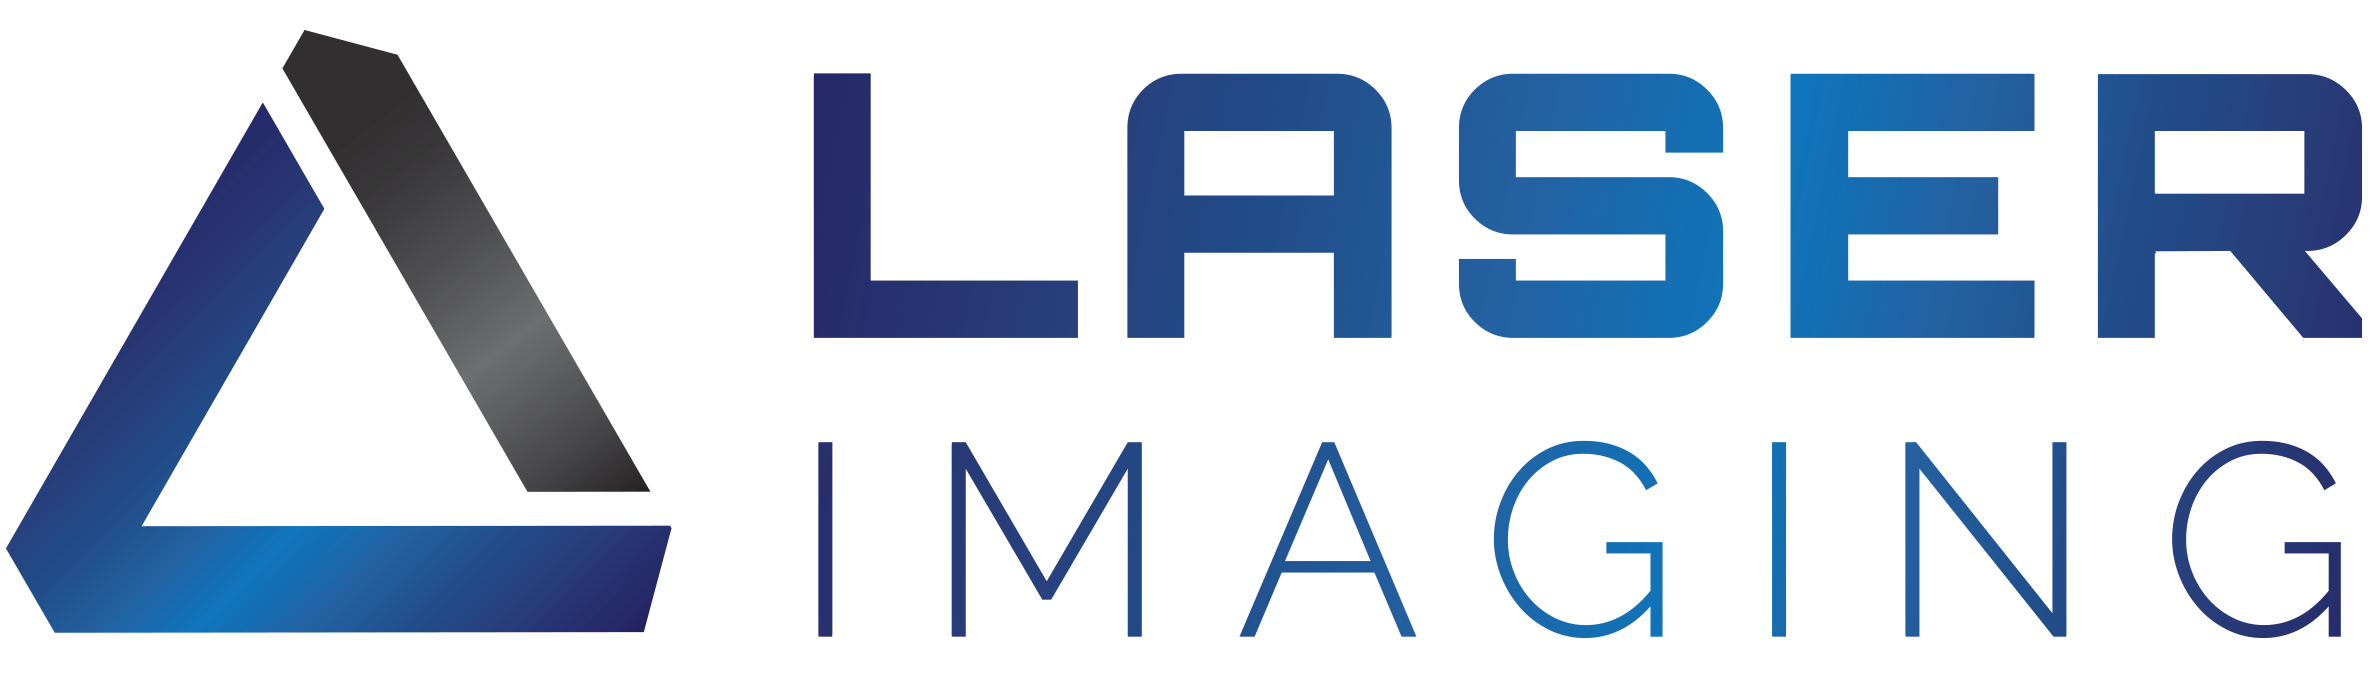 Laser Imaging, Inc.